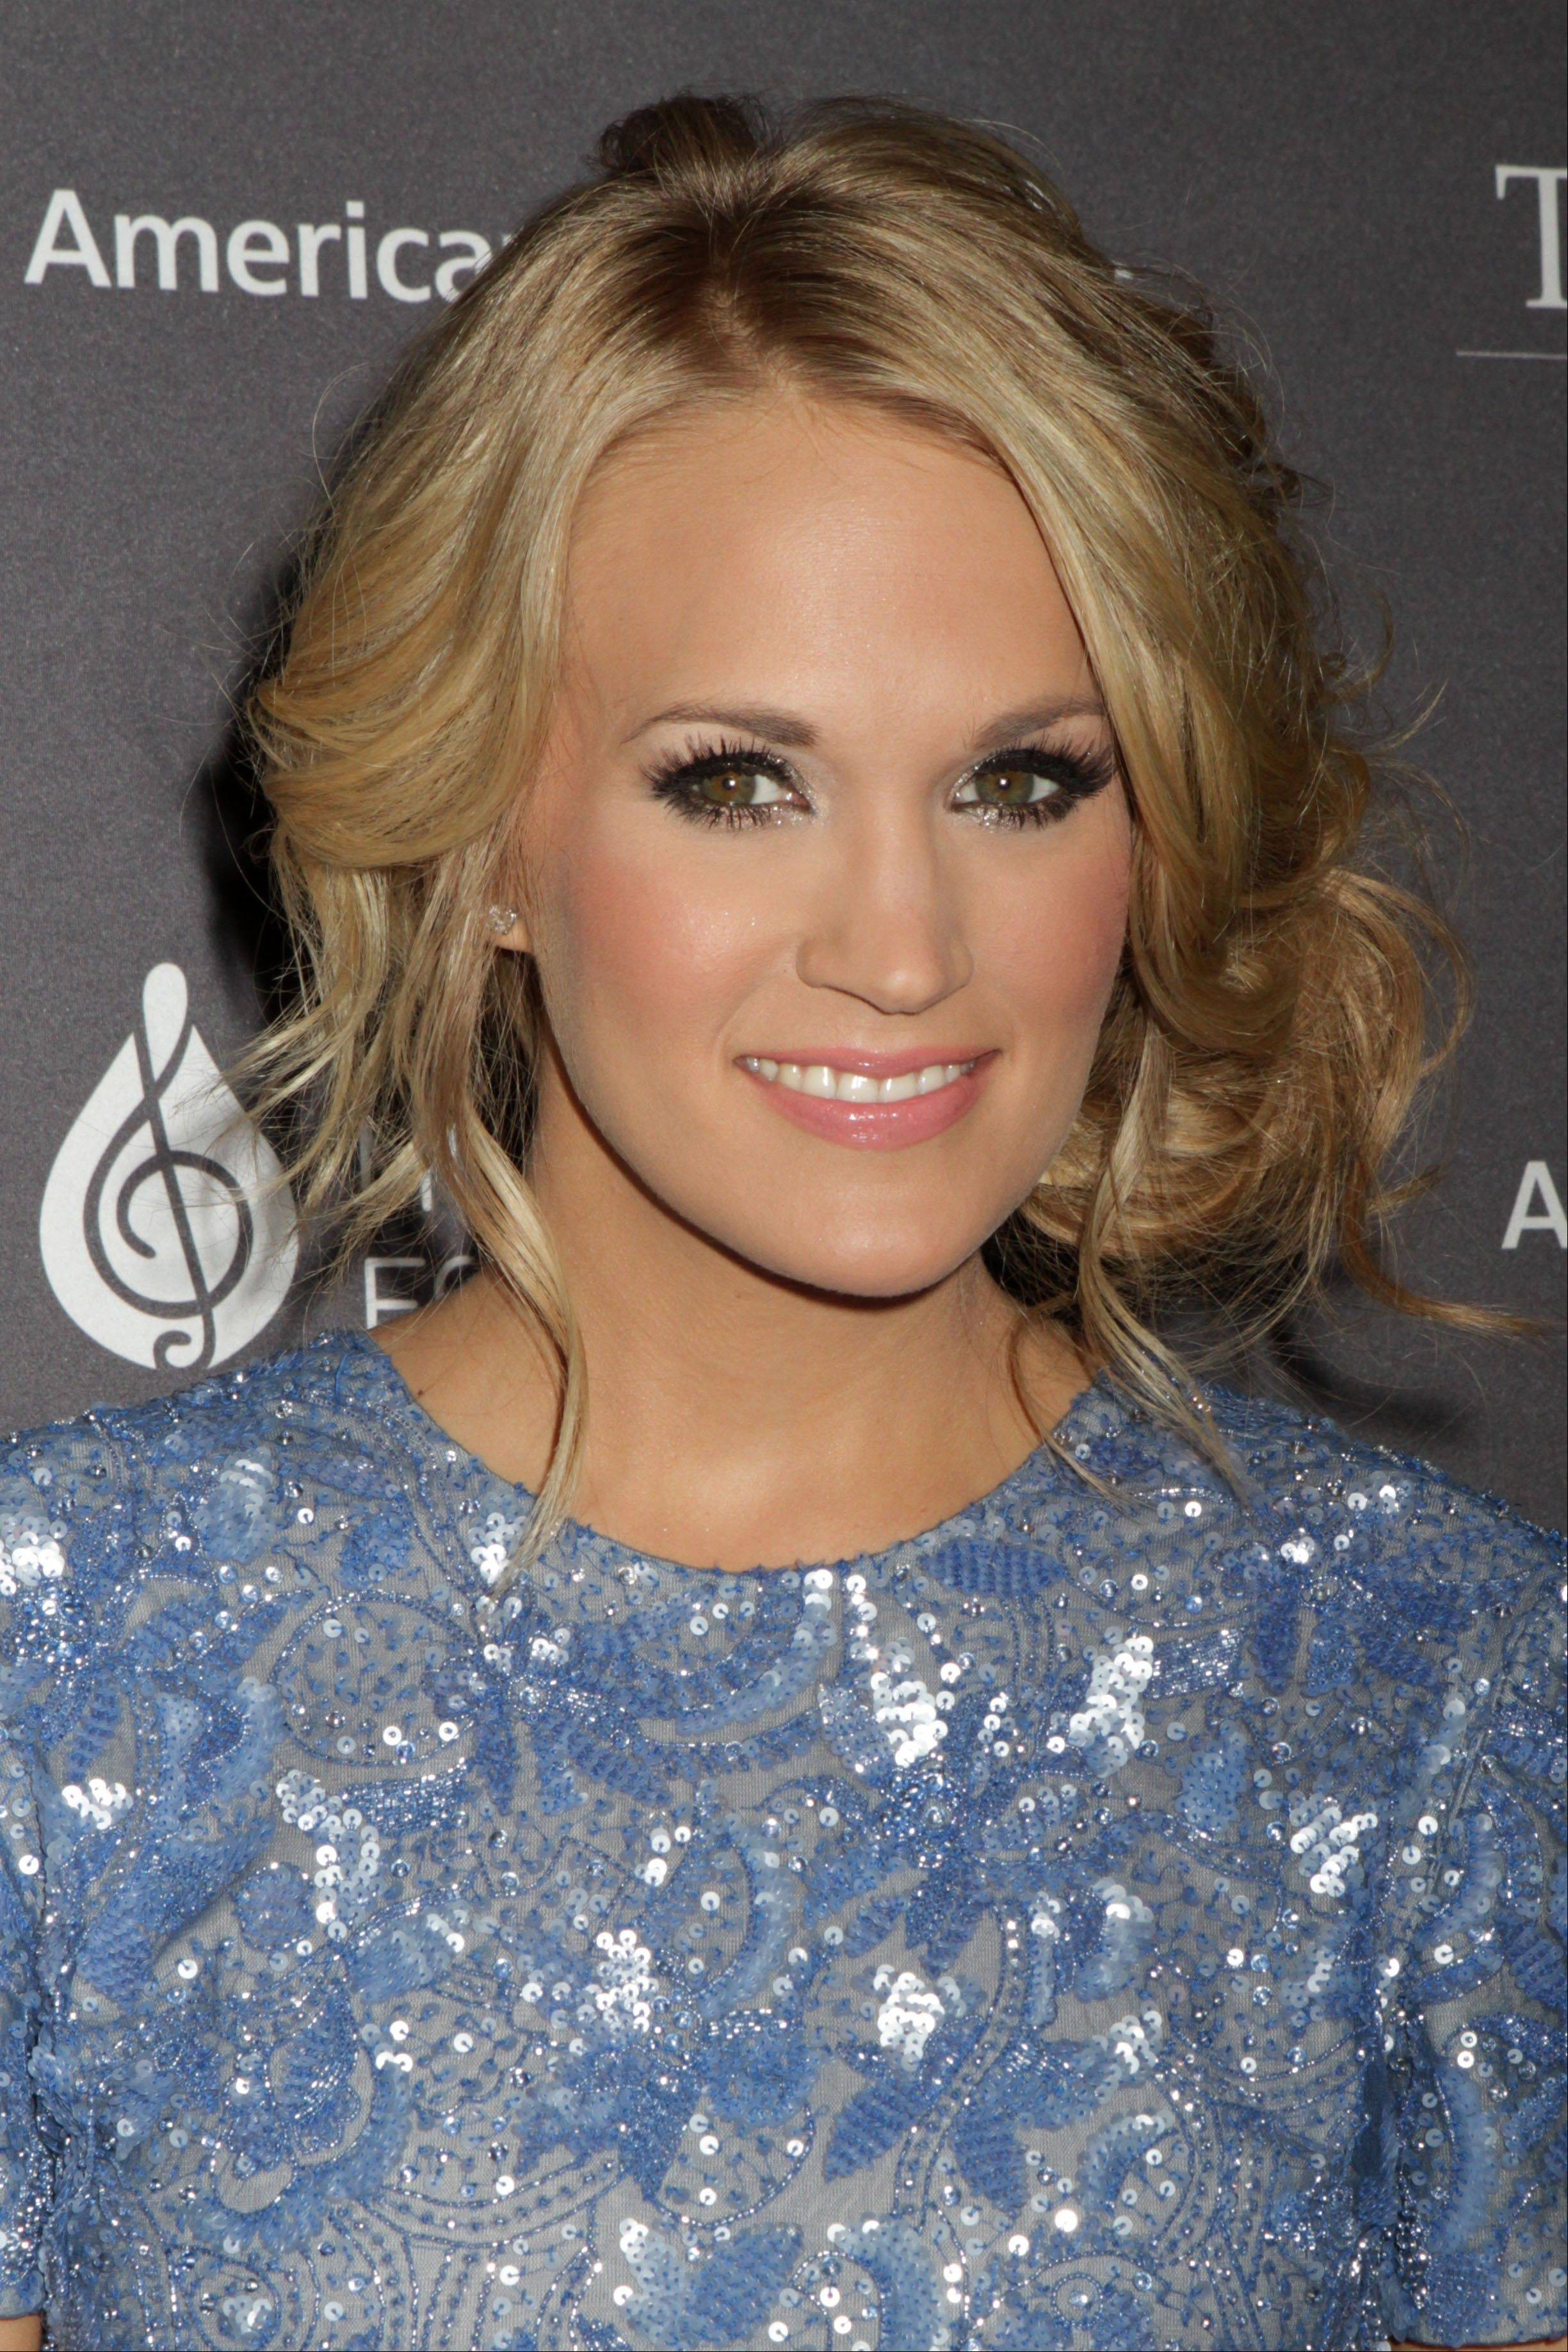 Carrie Underwood attends the T.J. Martell Foundation 38th Honors Gala on Tuesday in New York. With her hosting duties at the Country Music Association Awards and starring in a live television version of �The Sound of Music,� Underwood has a lot to look forward to in the next few months.